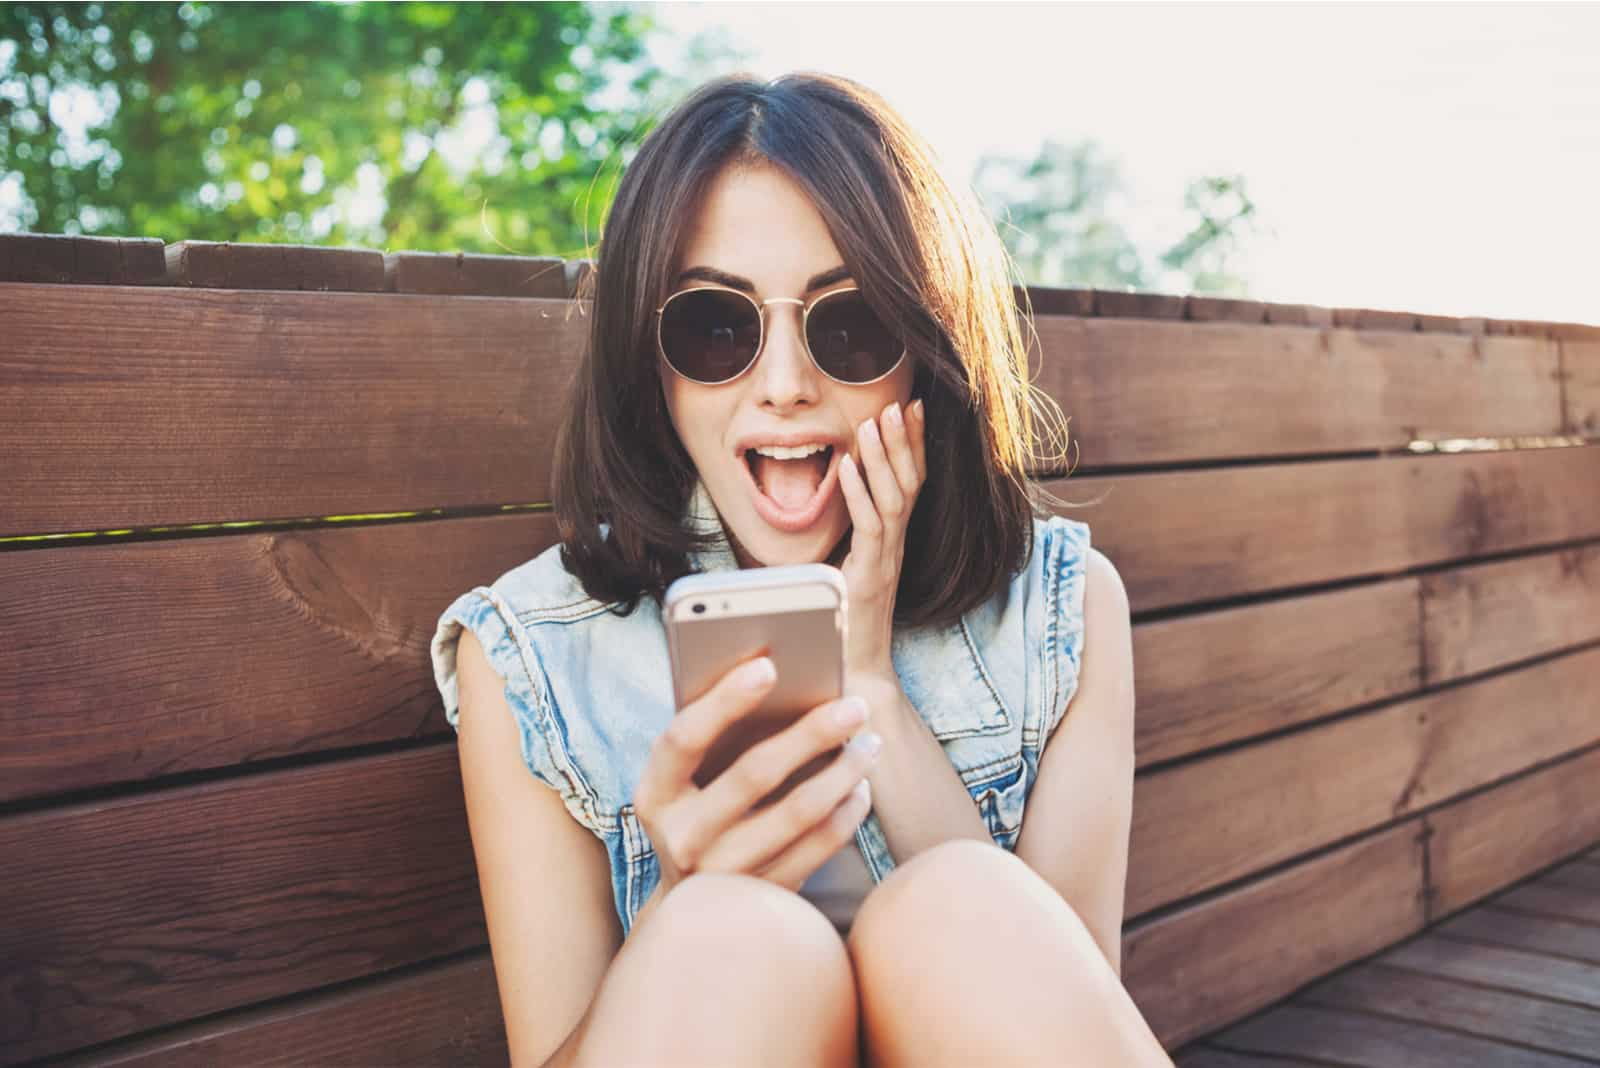 a smiling woman with glasses takes a picture on the phone